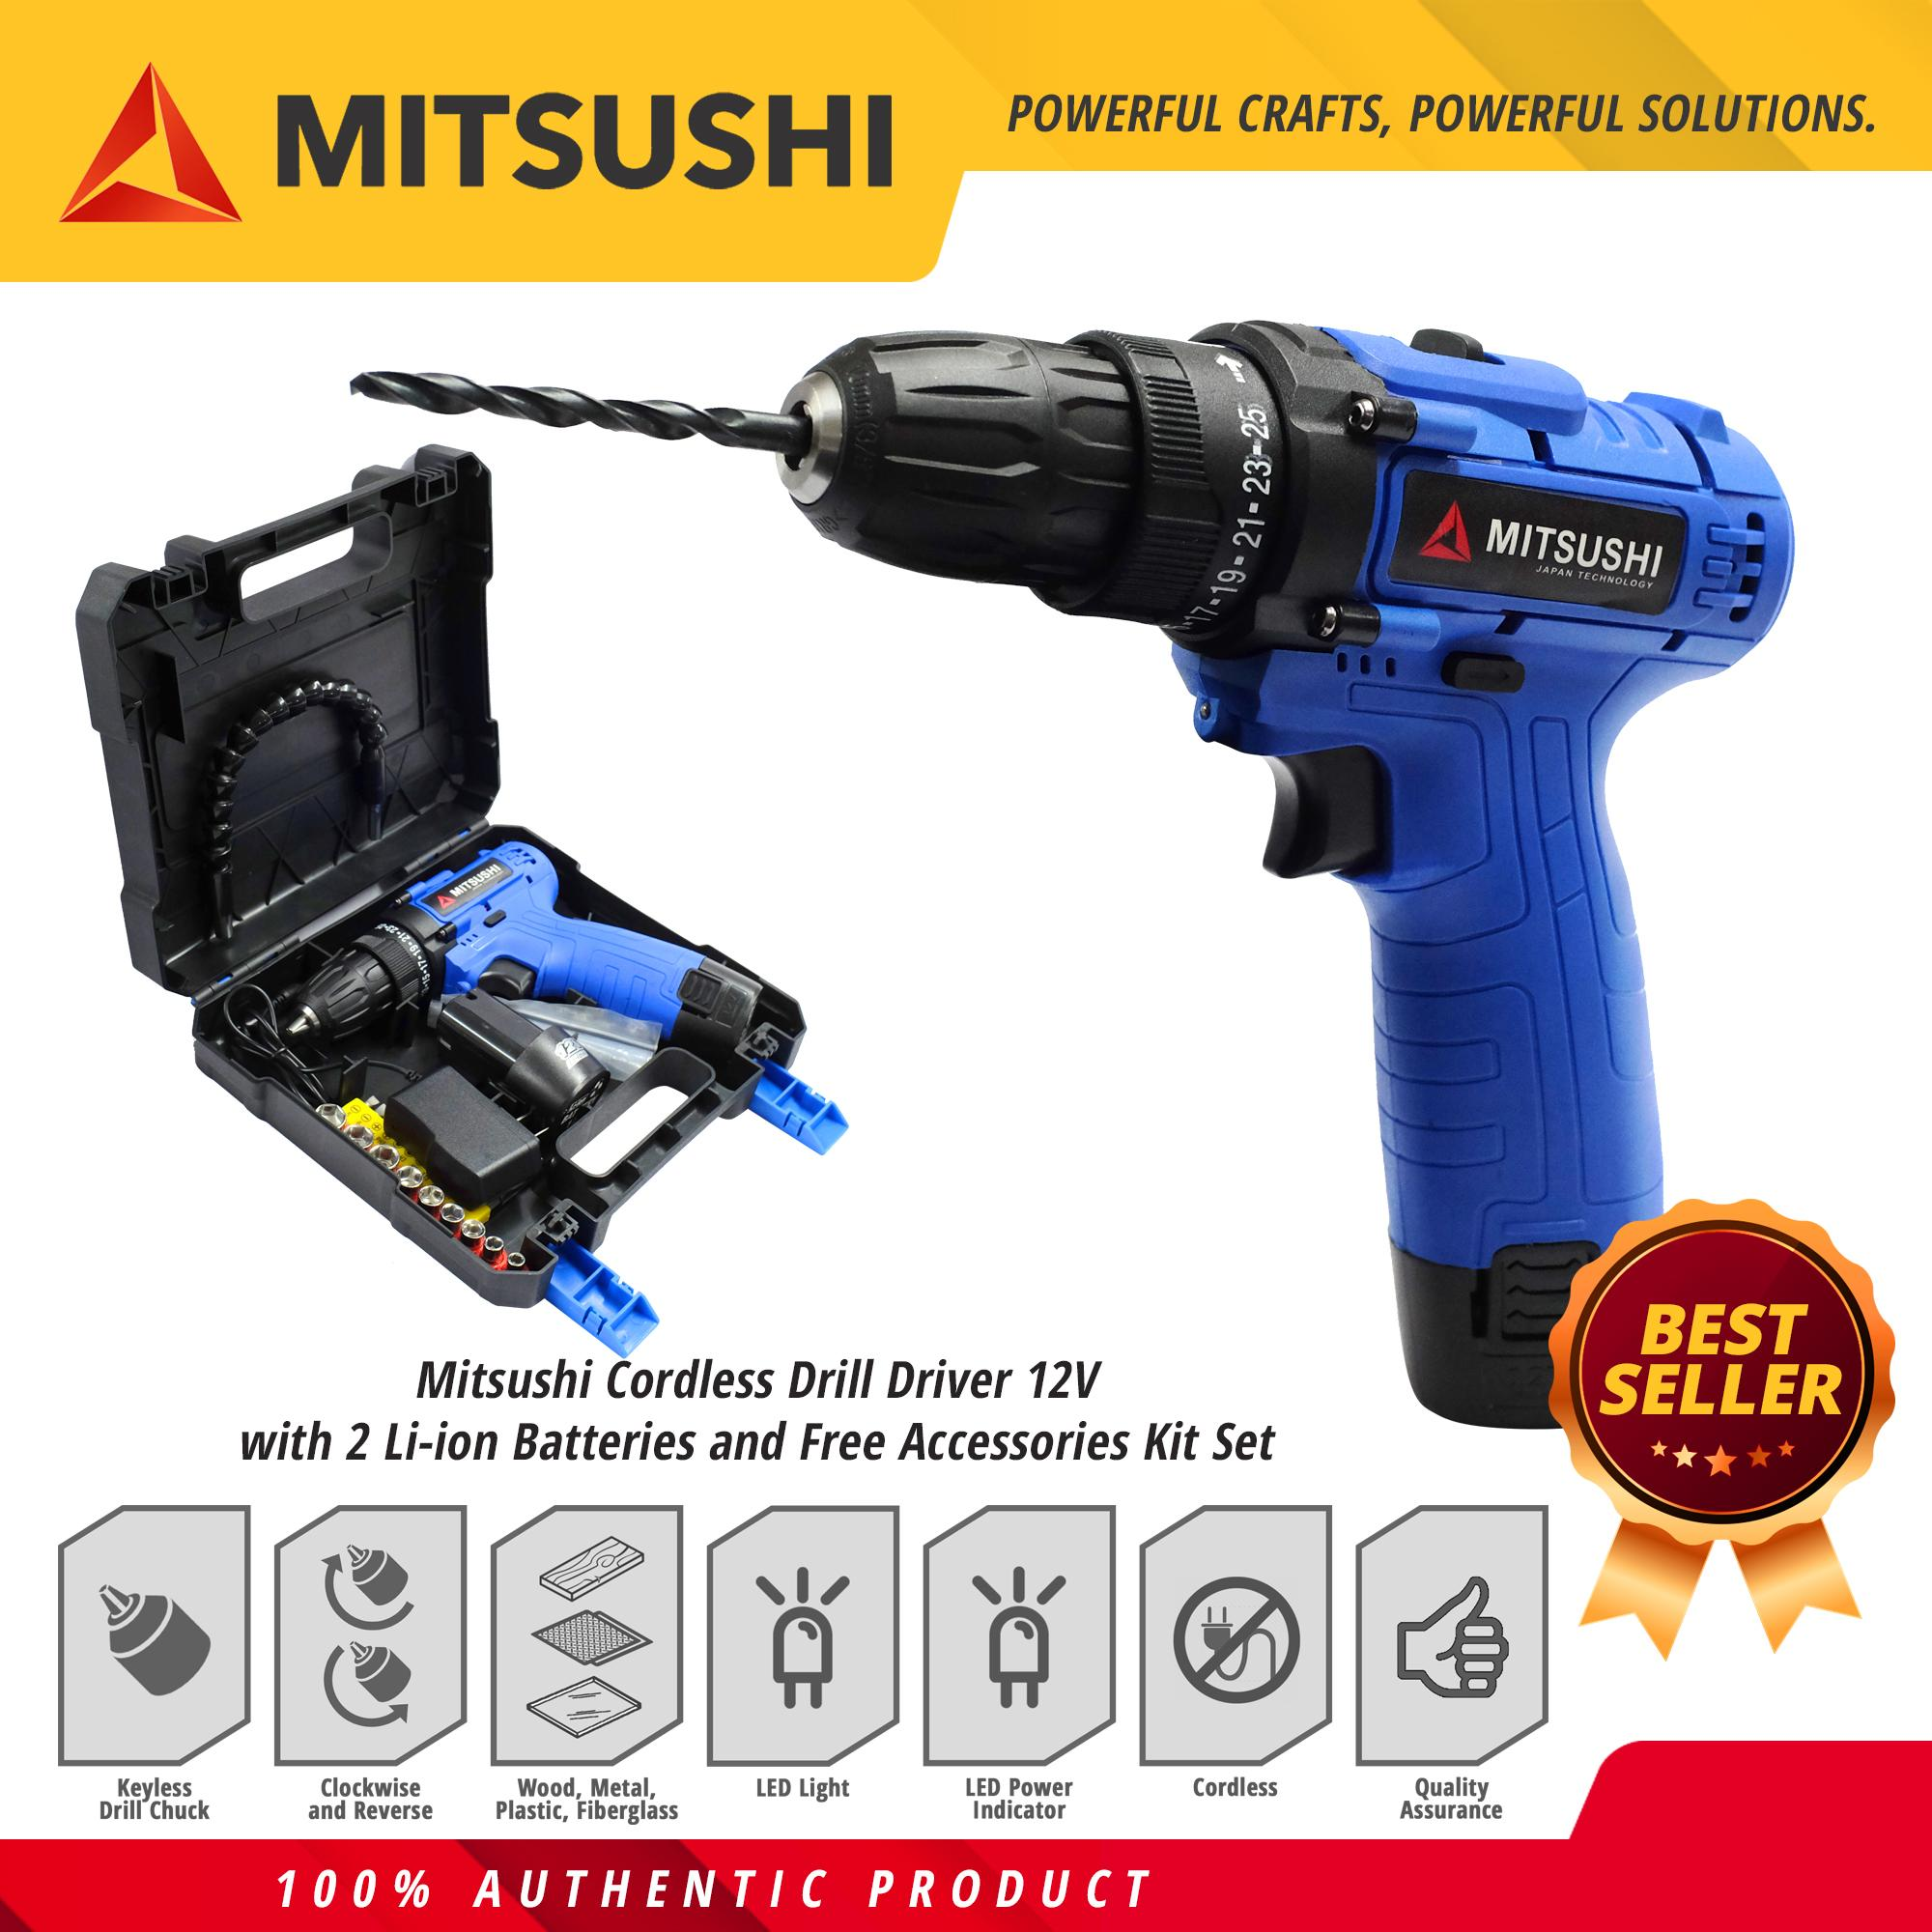 Power Tools for sale - Electrical Tools prices, brands & review in